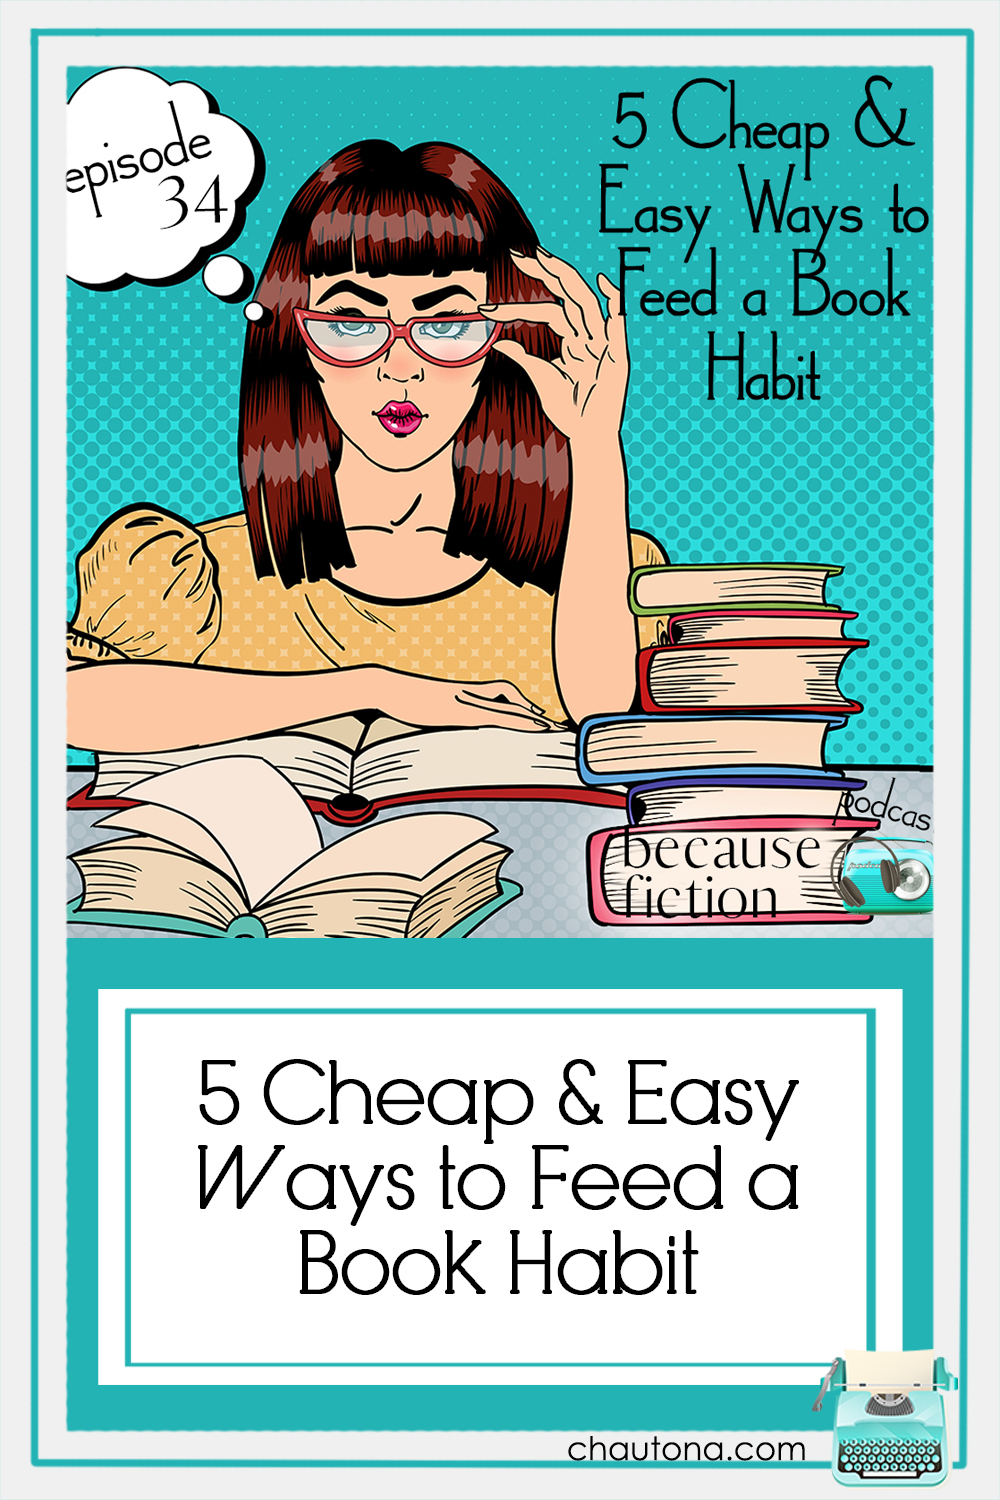 Paperback books, as lovely as they are, can be really expensive, so how can we fill our shelves without busting the budget? I've got five for you! via @chautonahavig